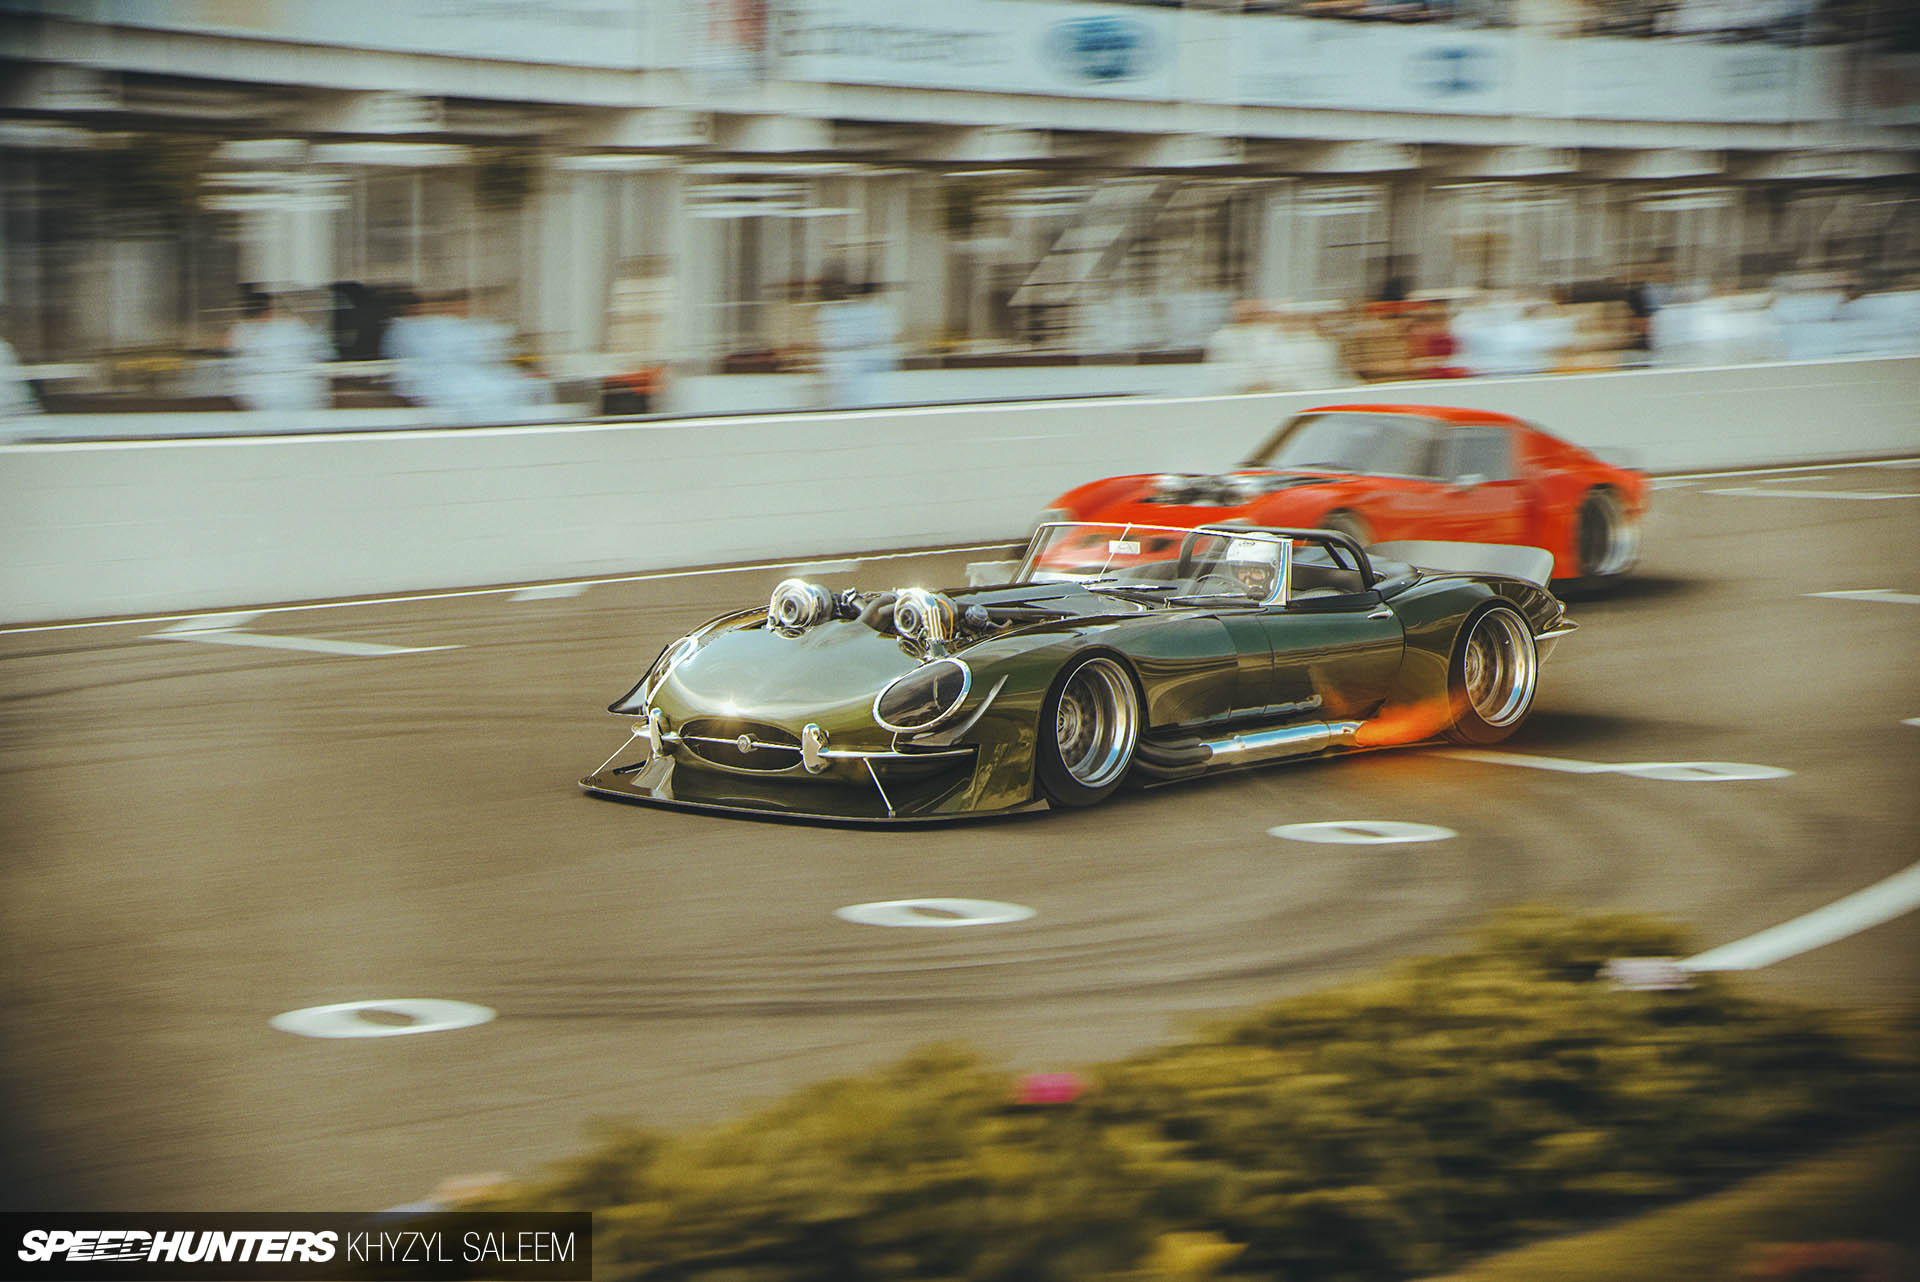 [Image: 2018-Goodwood-Revival-Render-Speedhunter...eem-03.jpg]